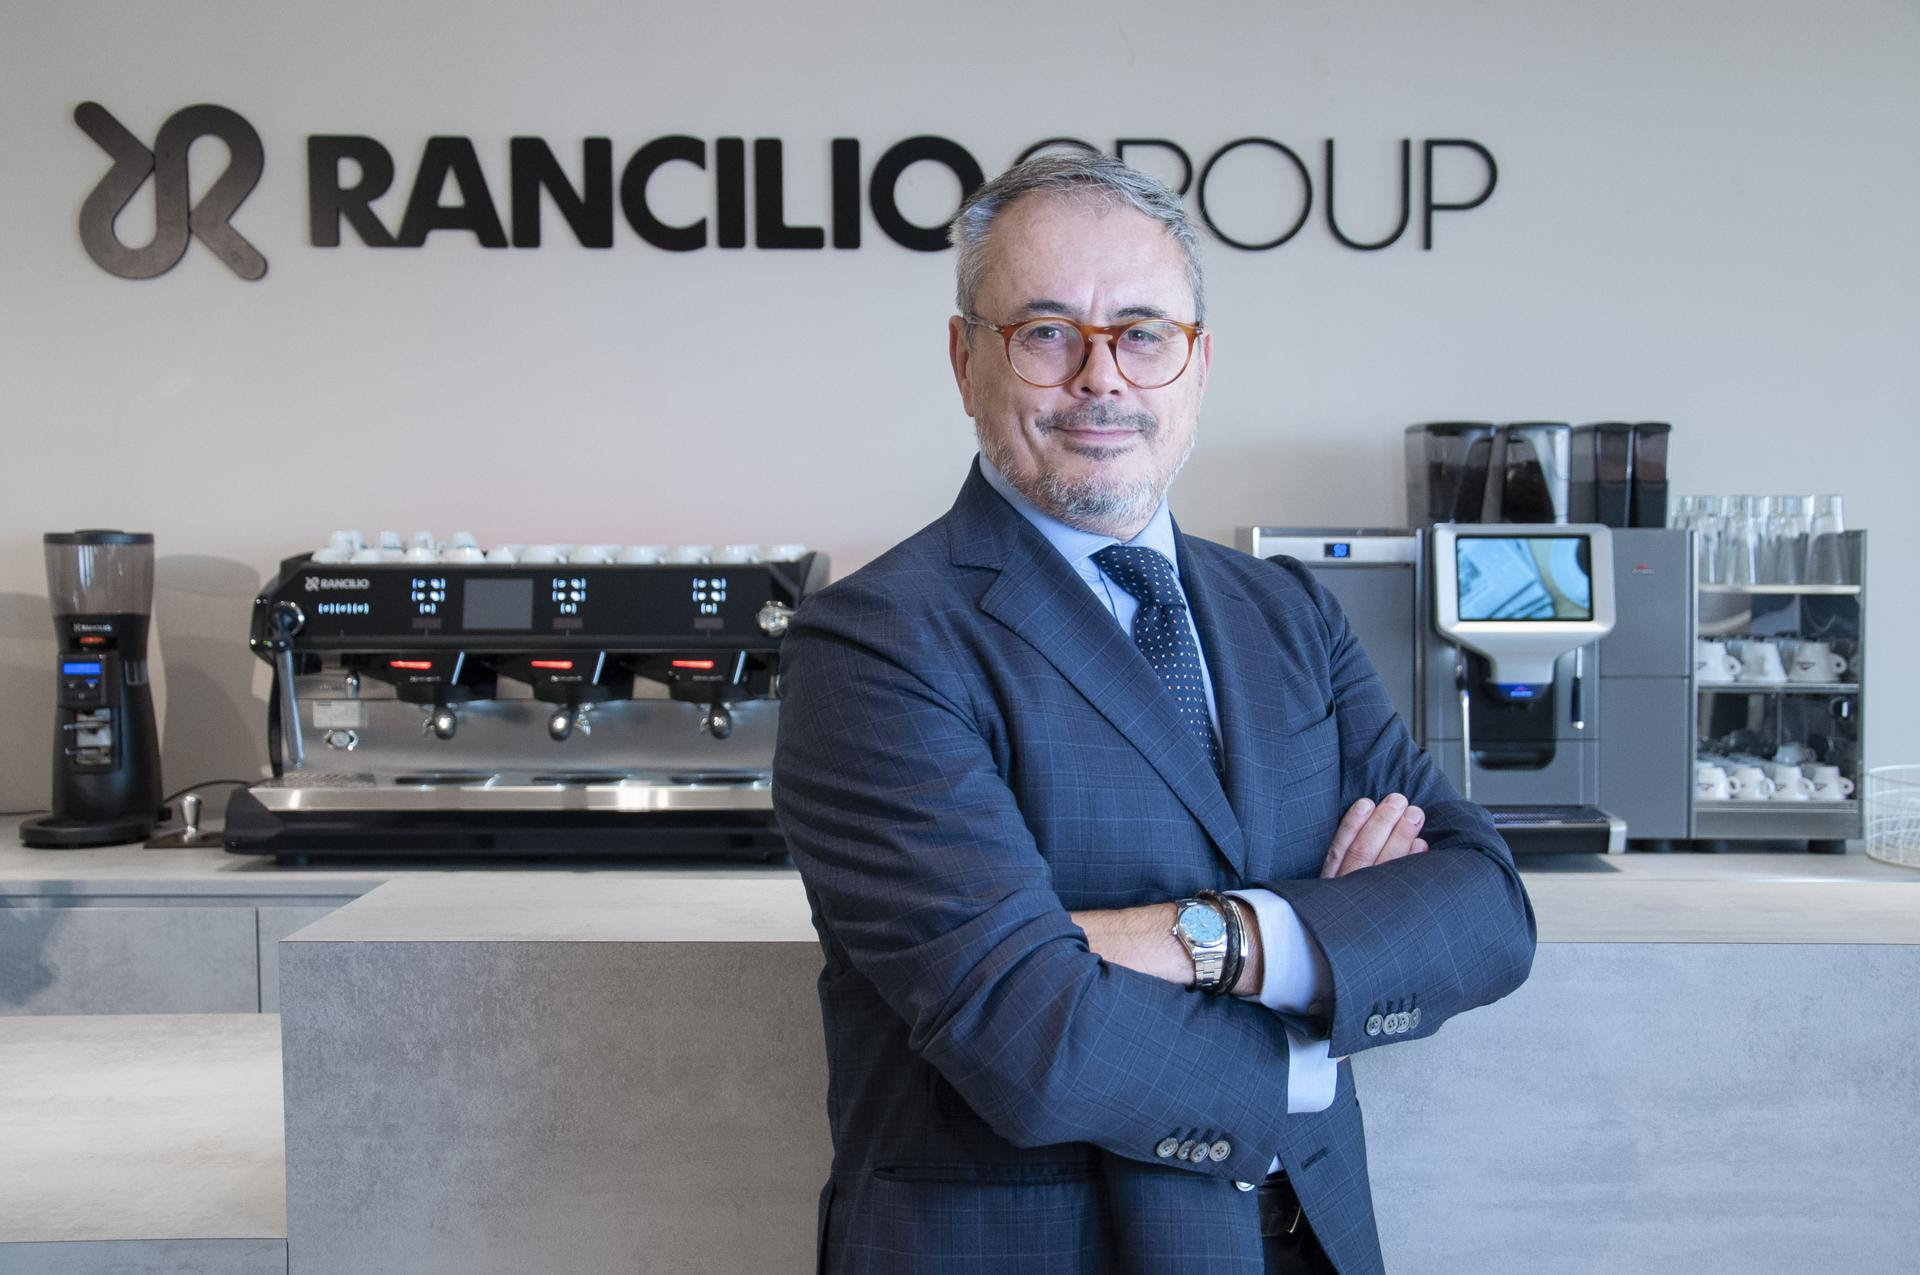 Rancilio Group - Ruggero Ferrari